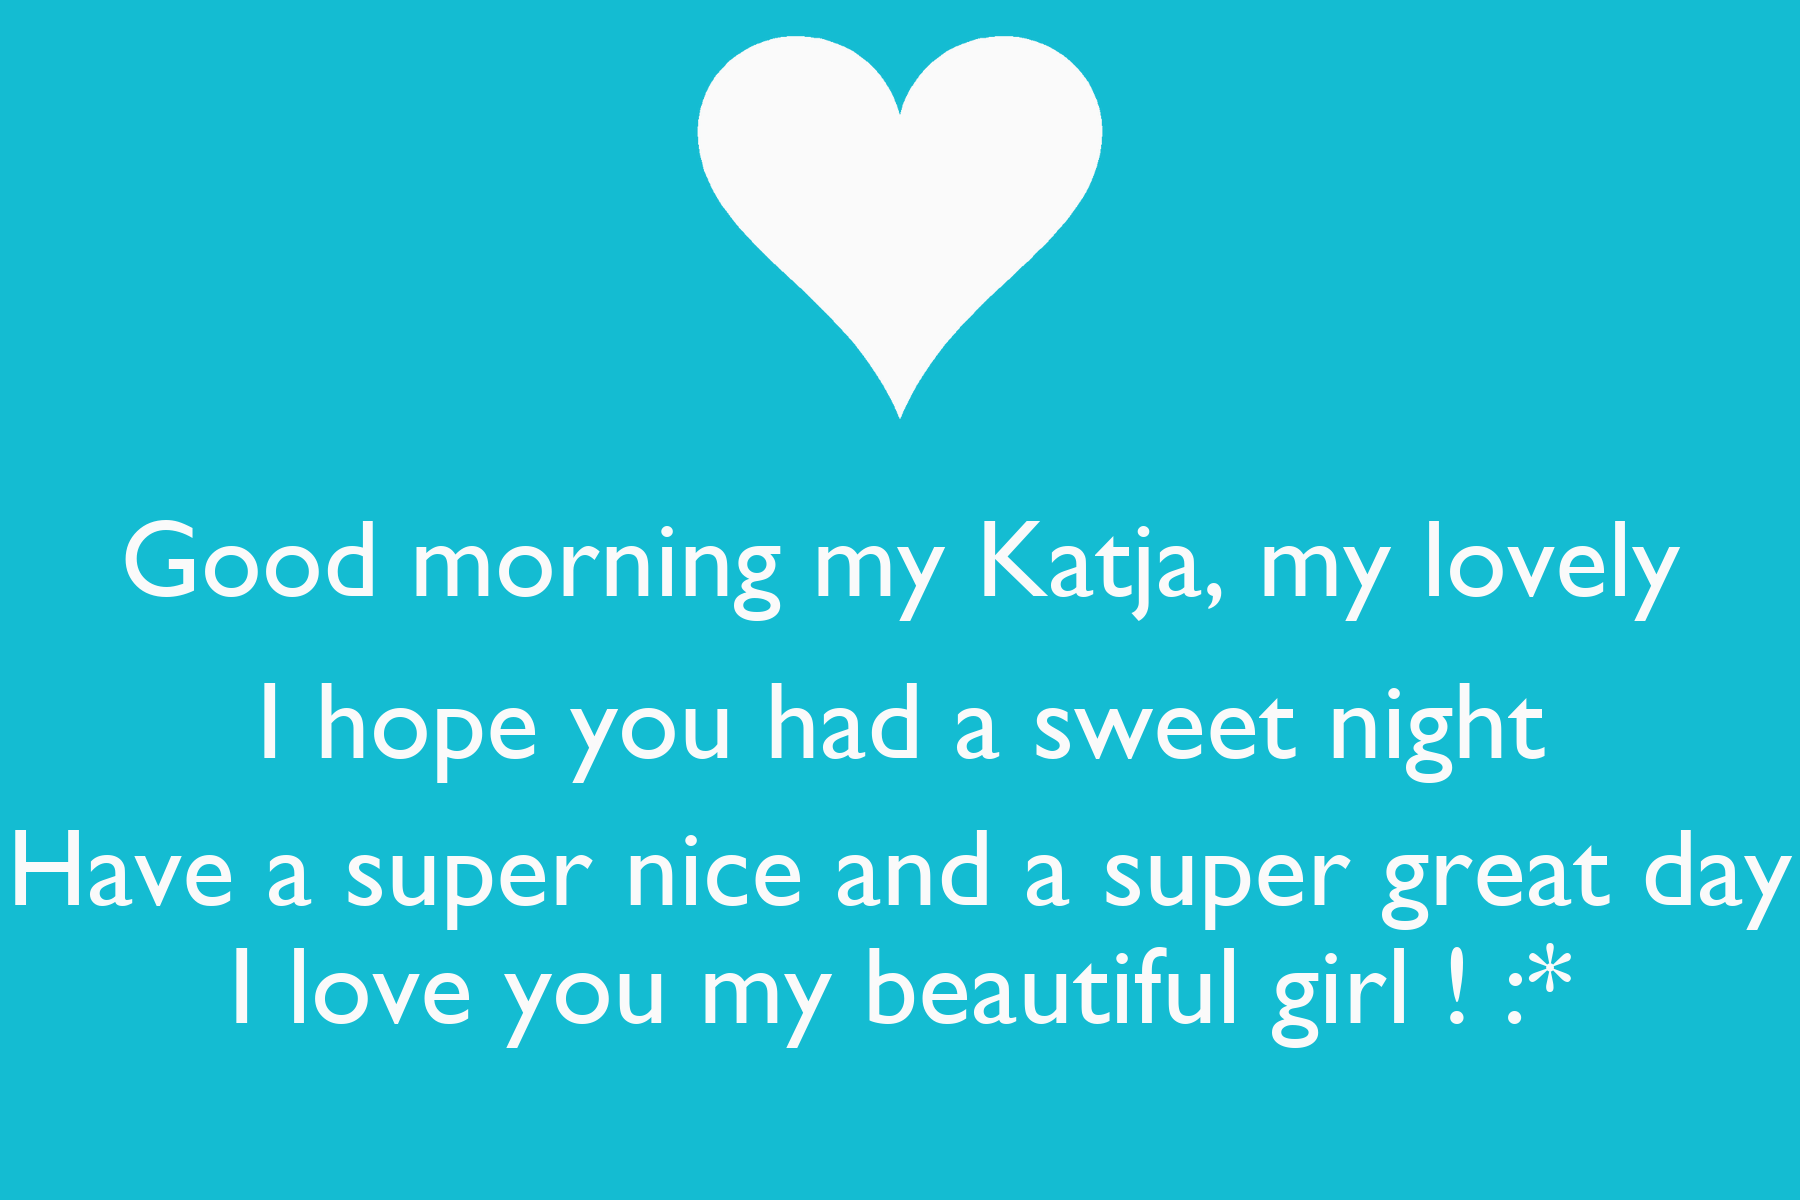 Good Morning Beautiful Hope You Have A Great Day : Good morning my katja lovely i hope you had a sweet